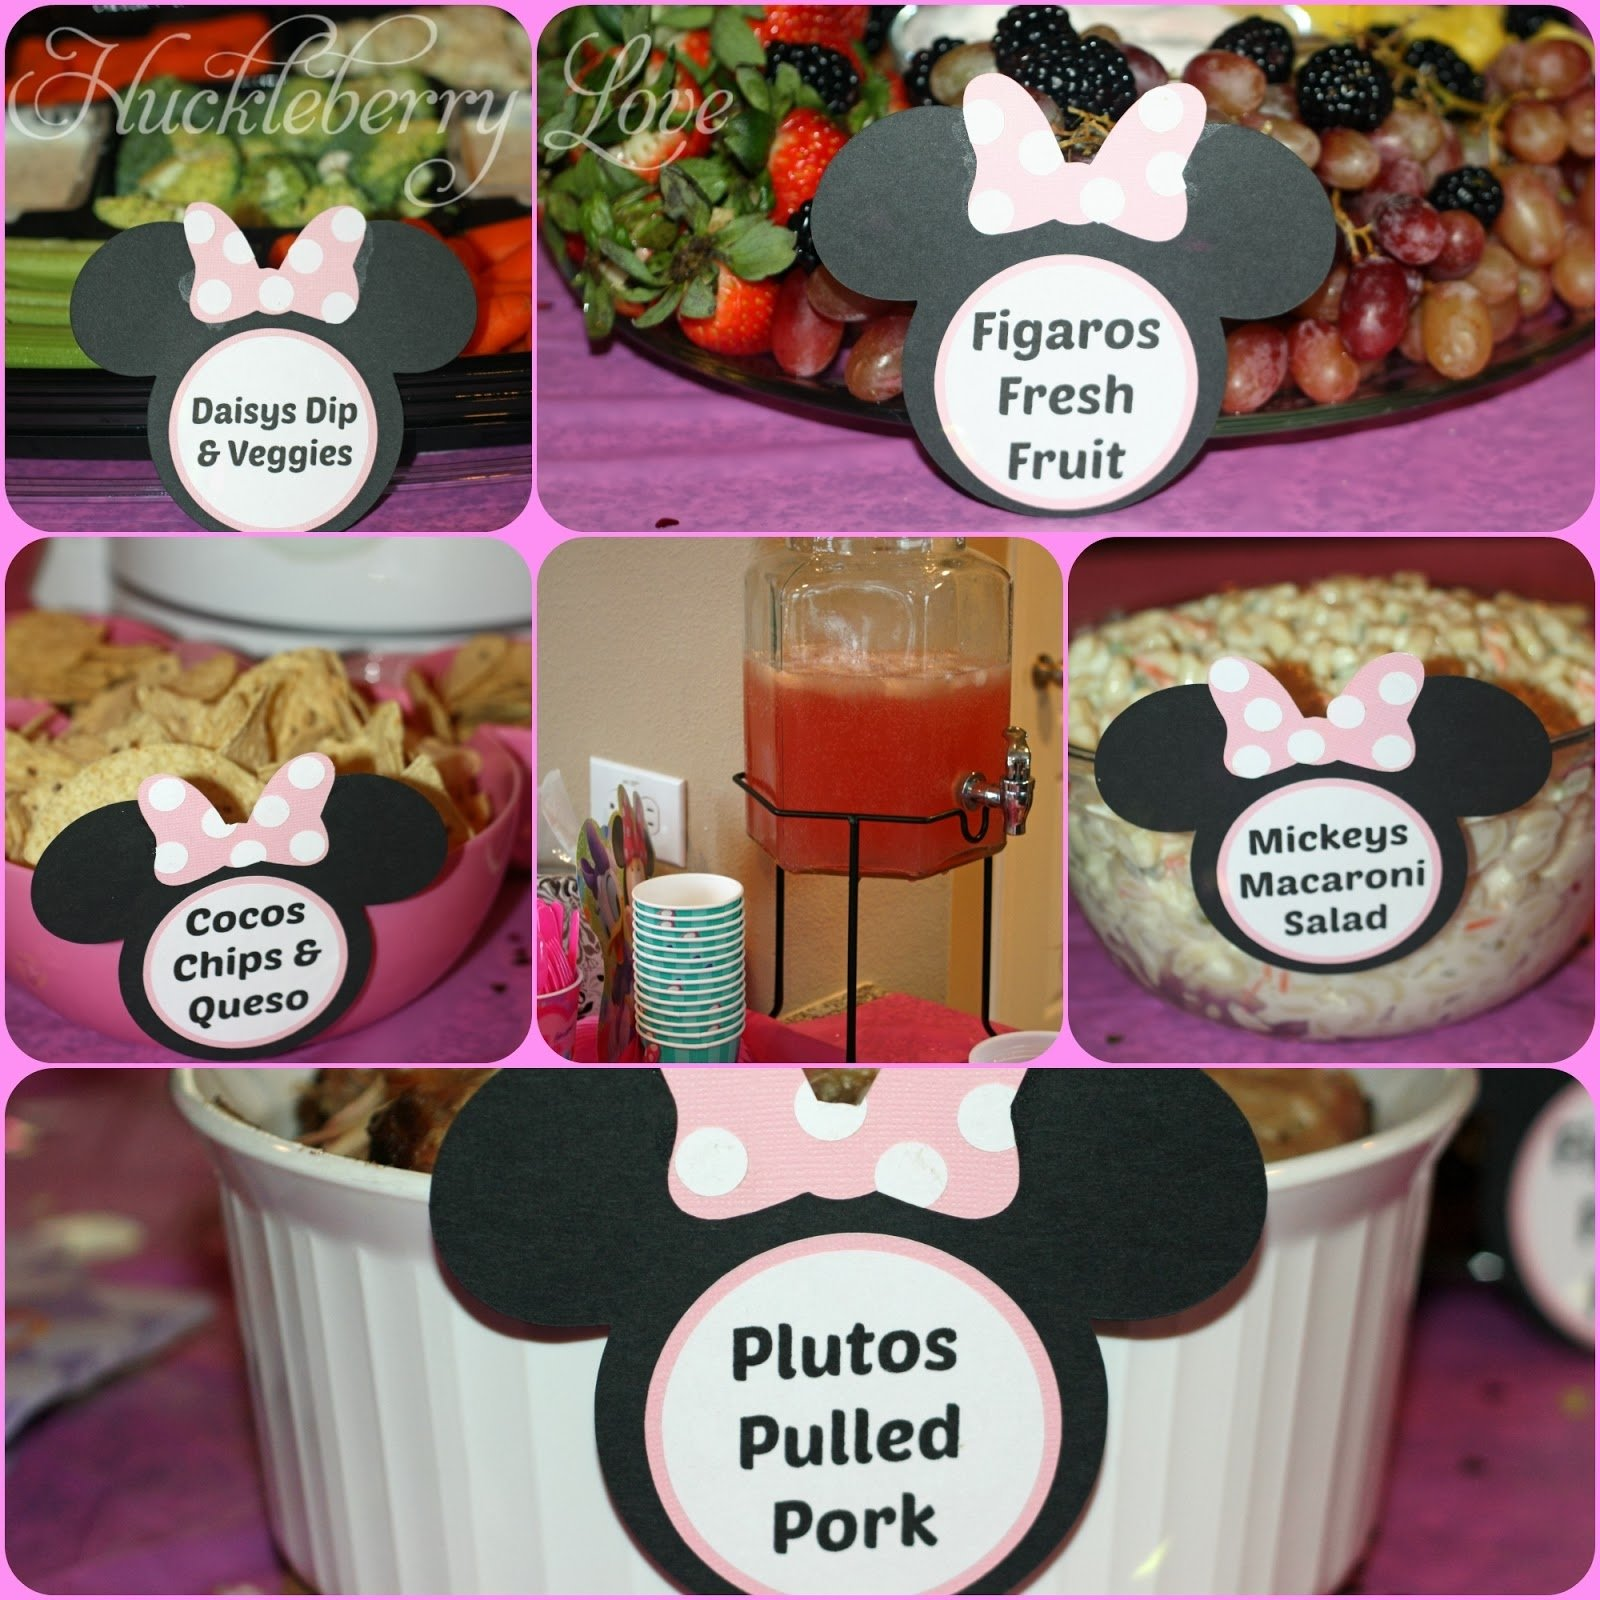 10 Fabulous Minnie Mouse Birthday Party Food Ideas huckleberry love a minnie mouse birthday party 2020